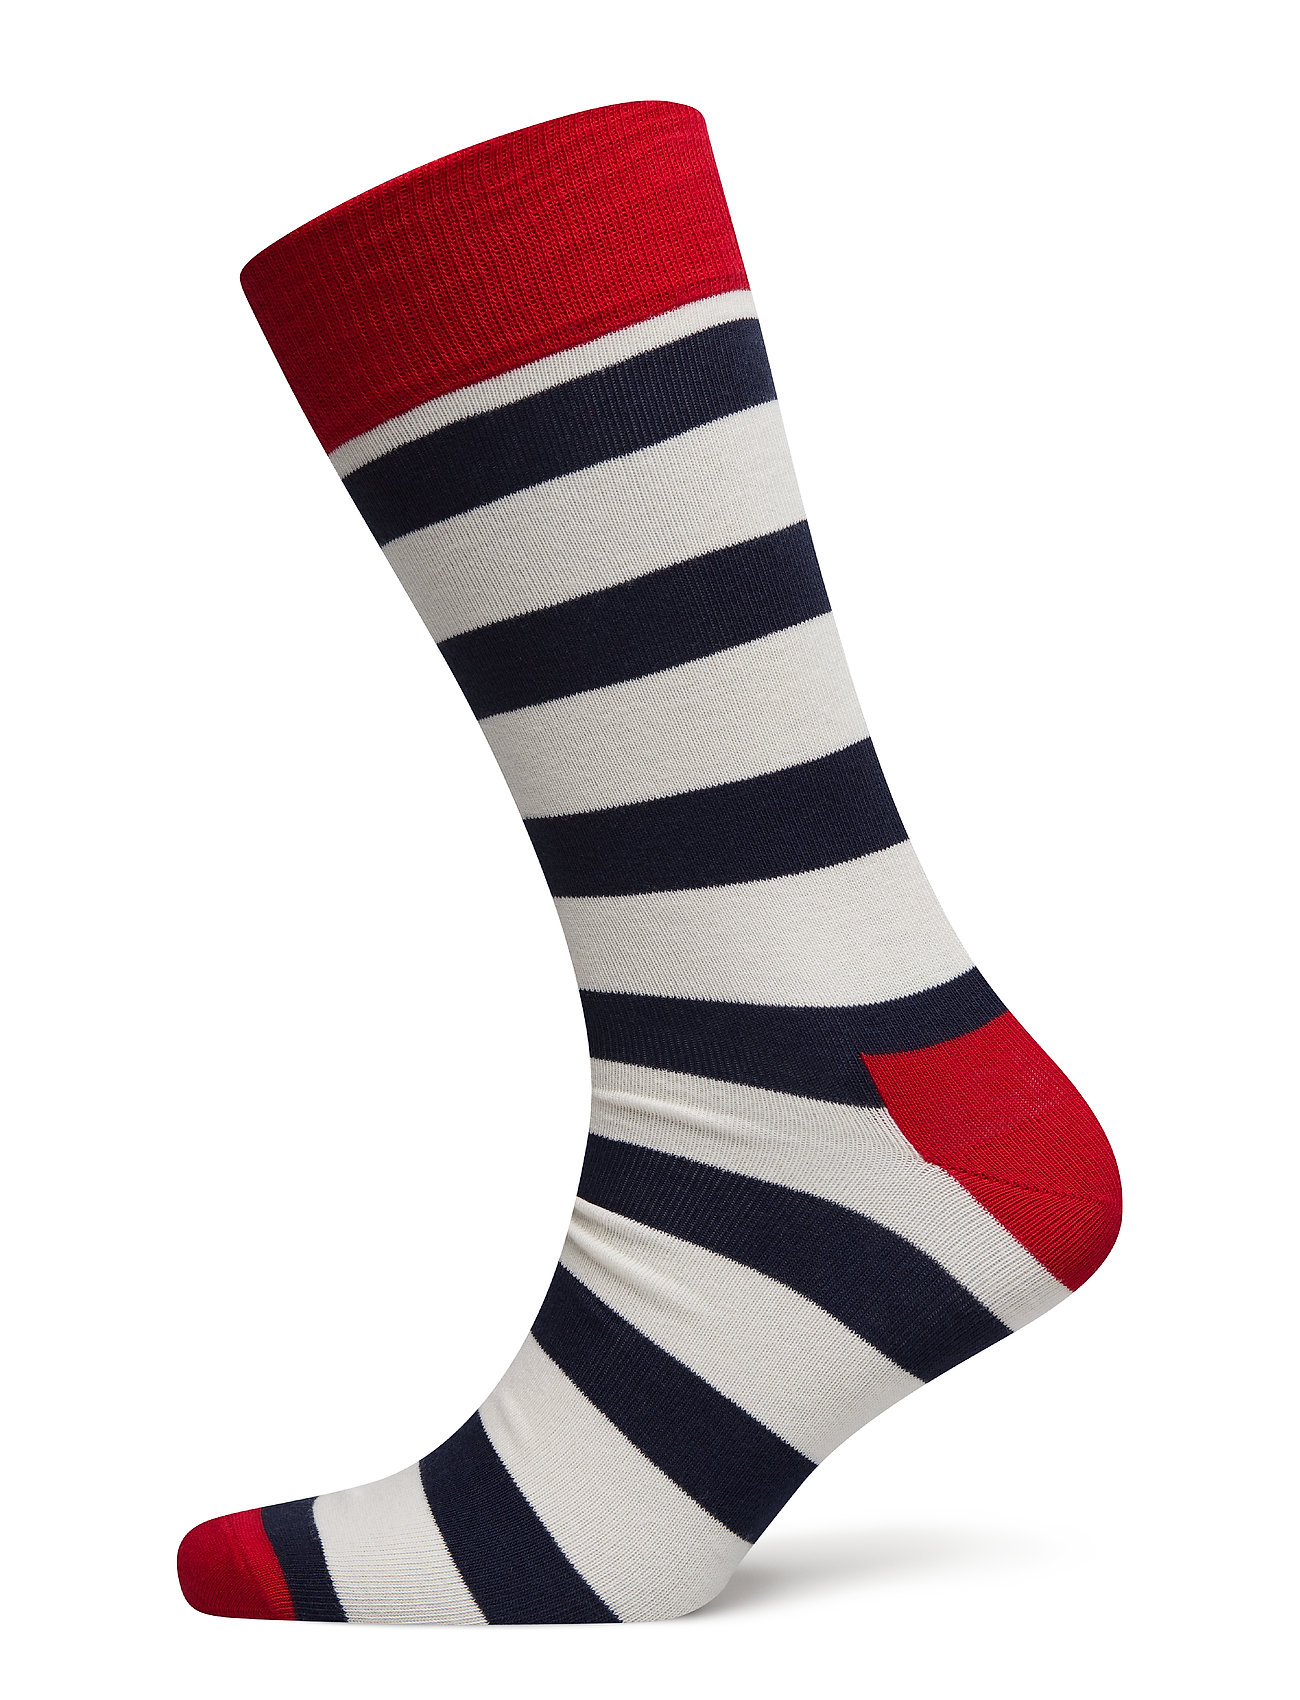 Happy Socks STRIPE MÖRK MULTI - RED